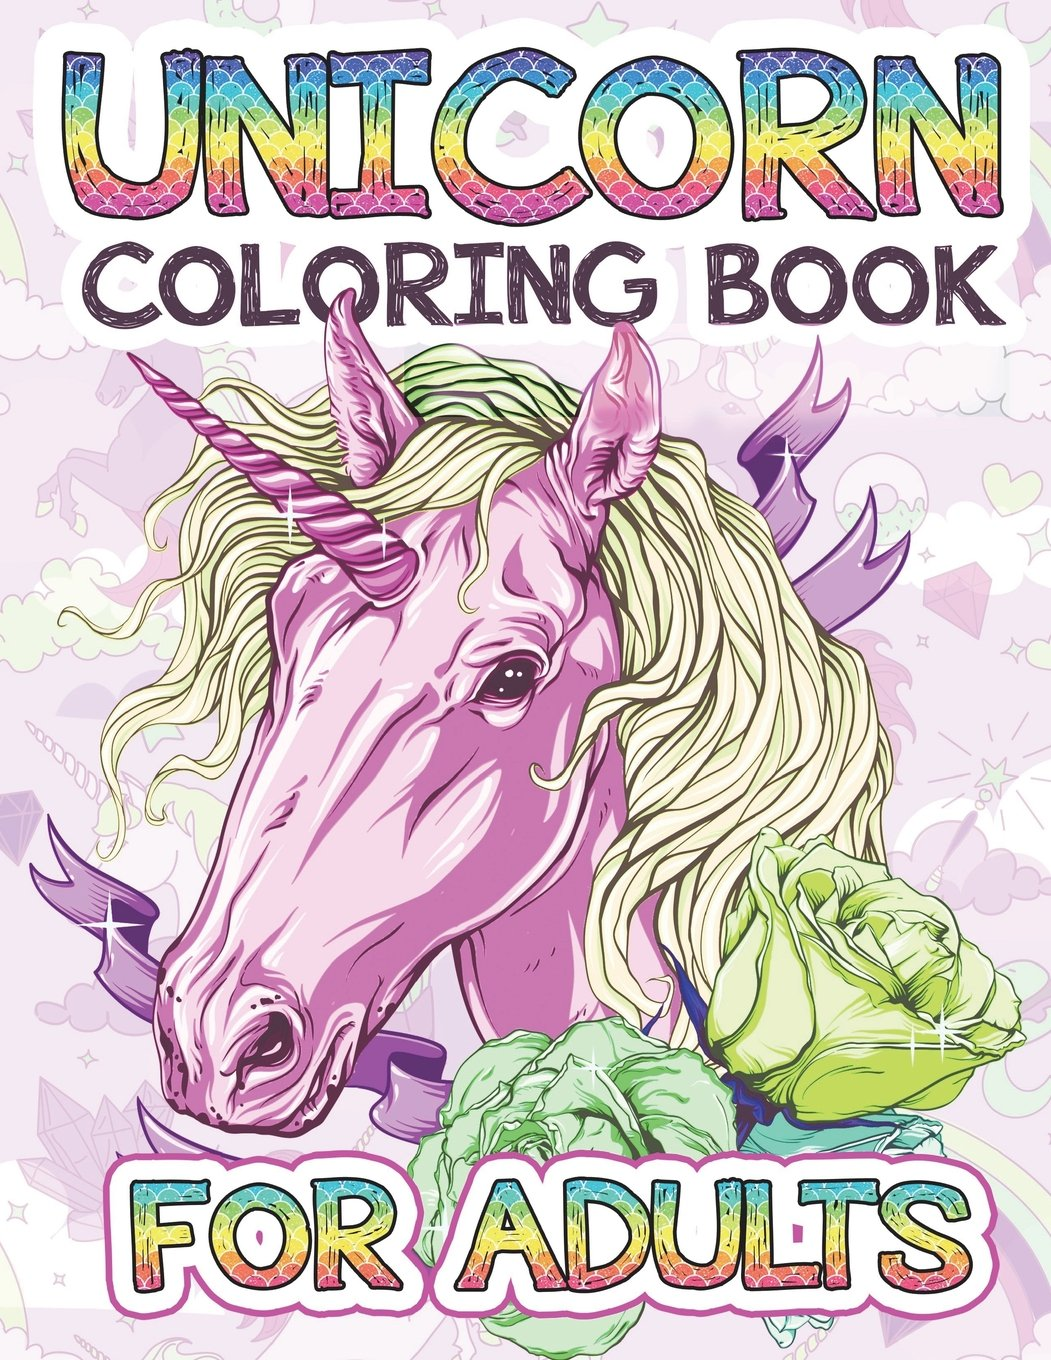 Unicorn Coloring Books for Adults: An Adult Coloring Book with Beautiful Unicorn Designs: Fun, Relaxing, and Stress Relief Unicorn Coloring Pages Gift For Her, Girls, Ladies, Women Who Love Unicorns pdf epub